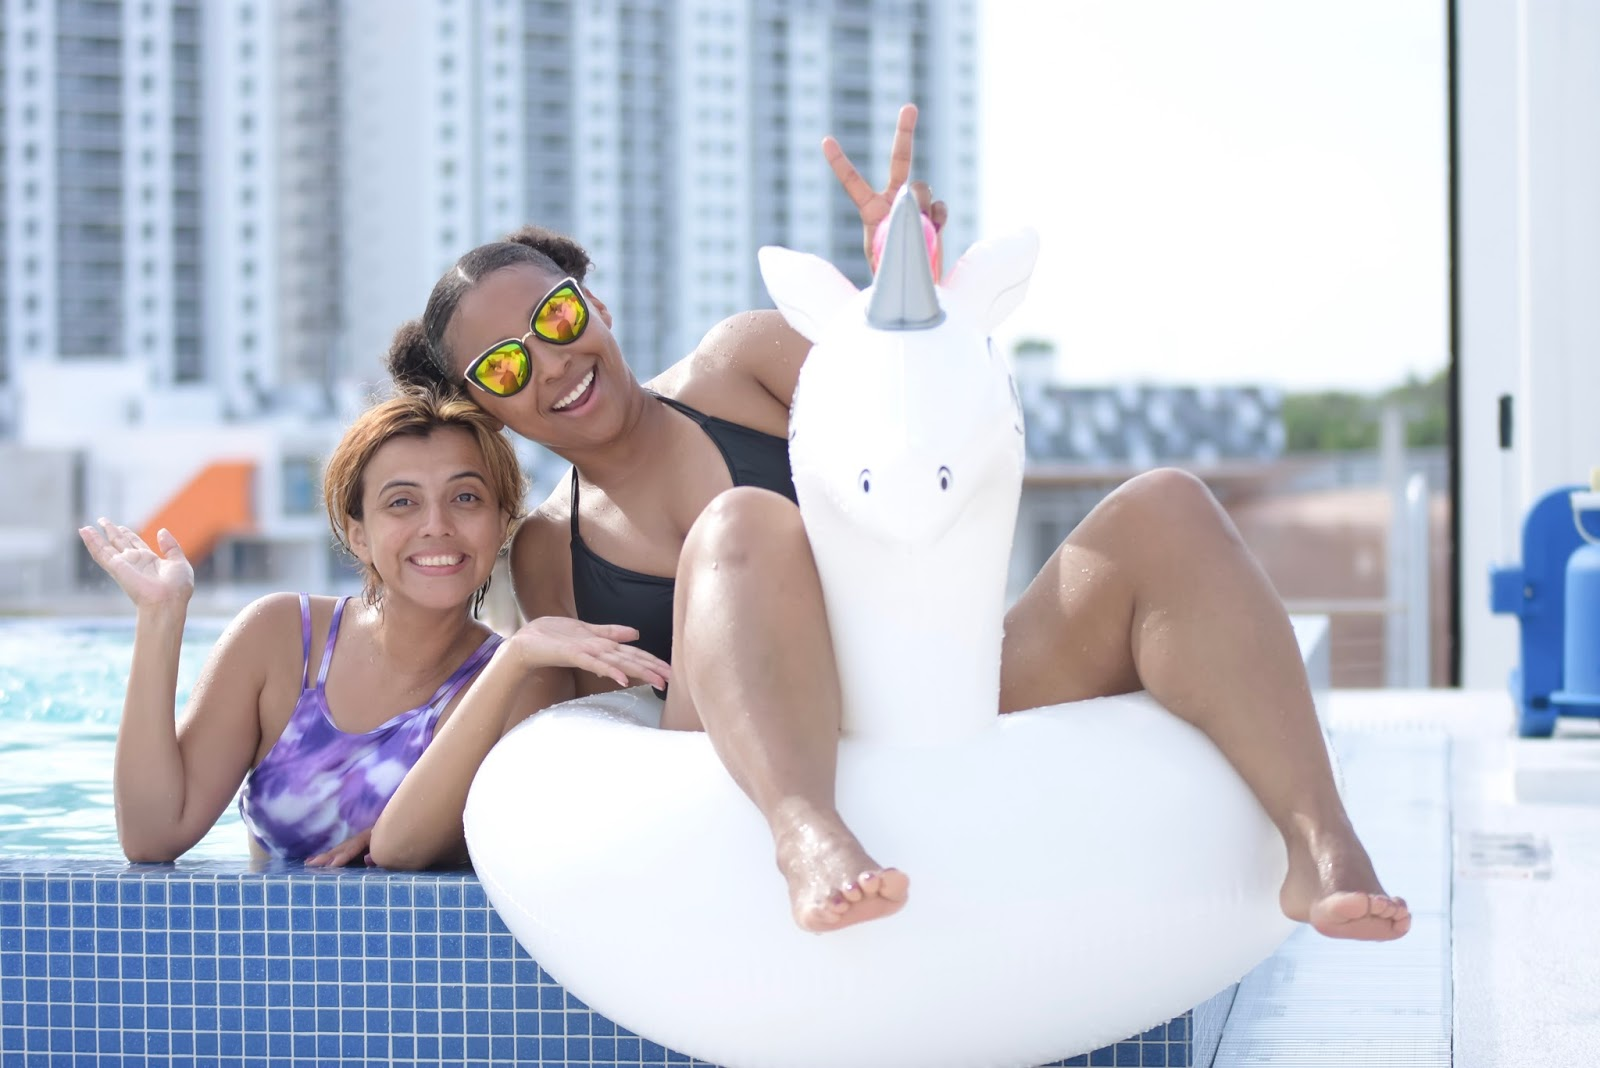 The Residence Inn By Marriott Miami Beach, hotel reviews, travel bloggers, travel blog, hotels with pools, infitiny pool, mariestillo, armandhugon, south beach hotels